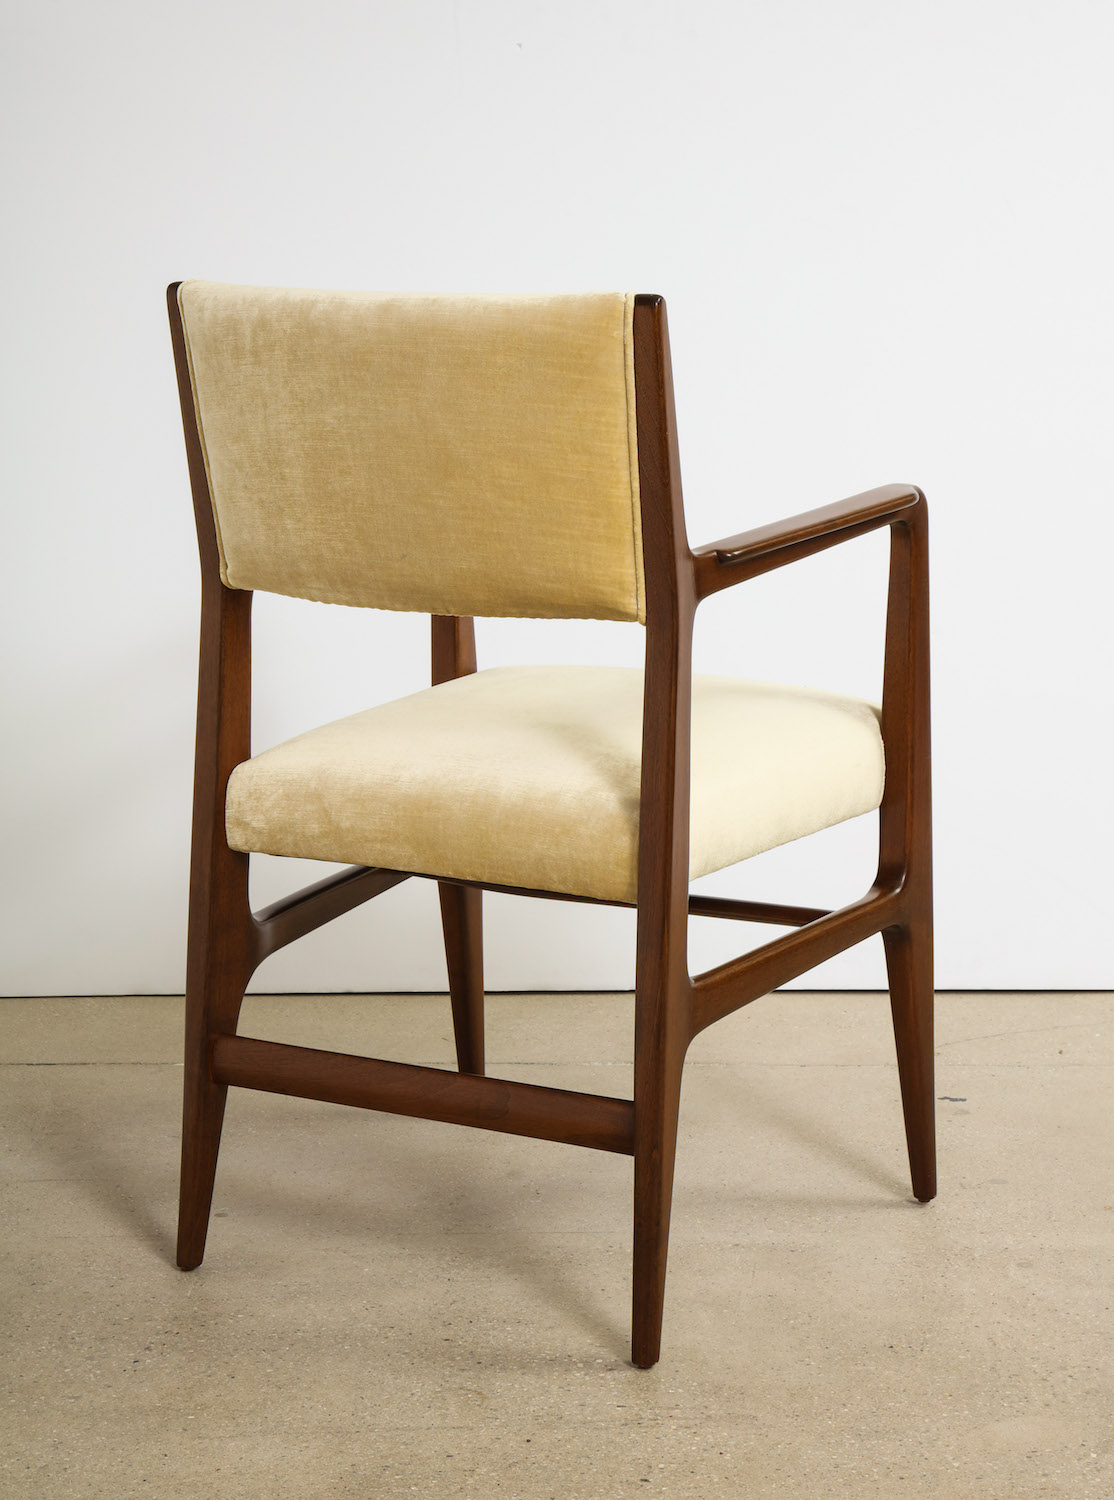 Ponti Singer Dining Arm Chairs 7.jpg